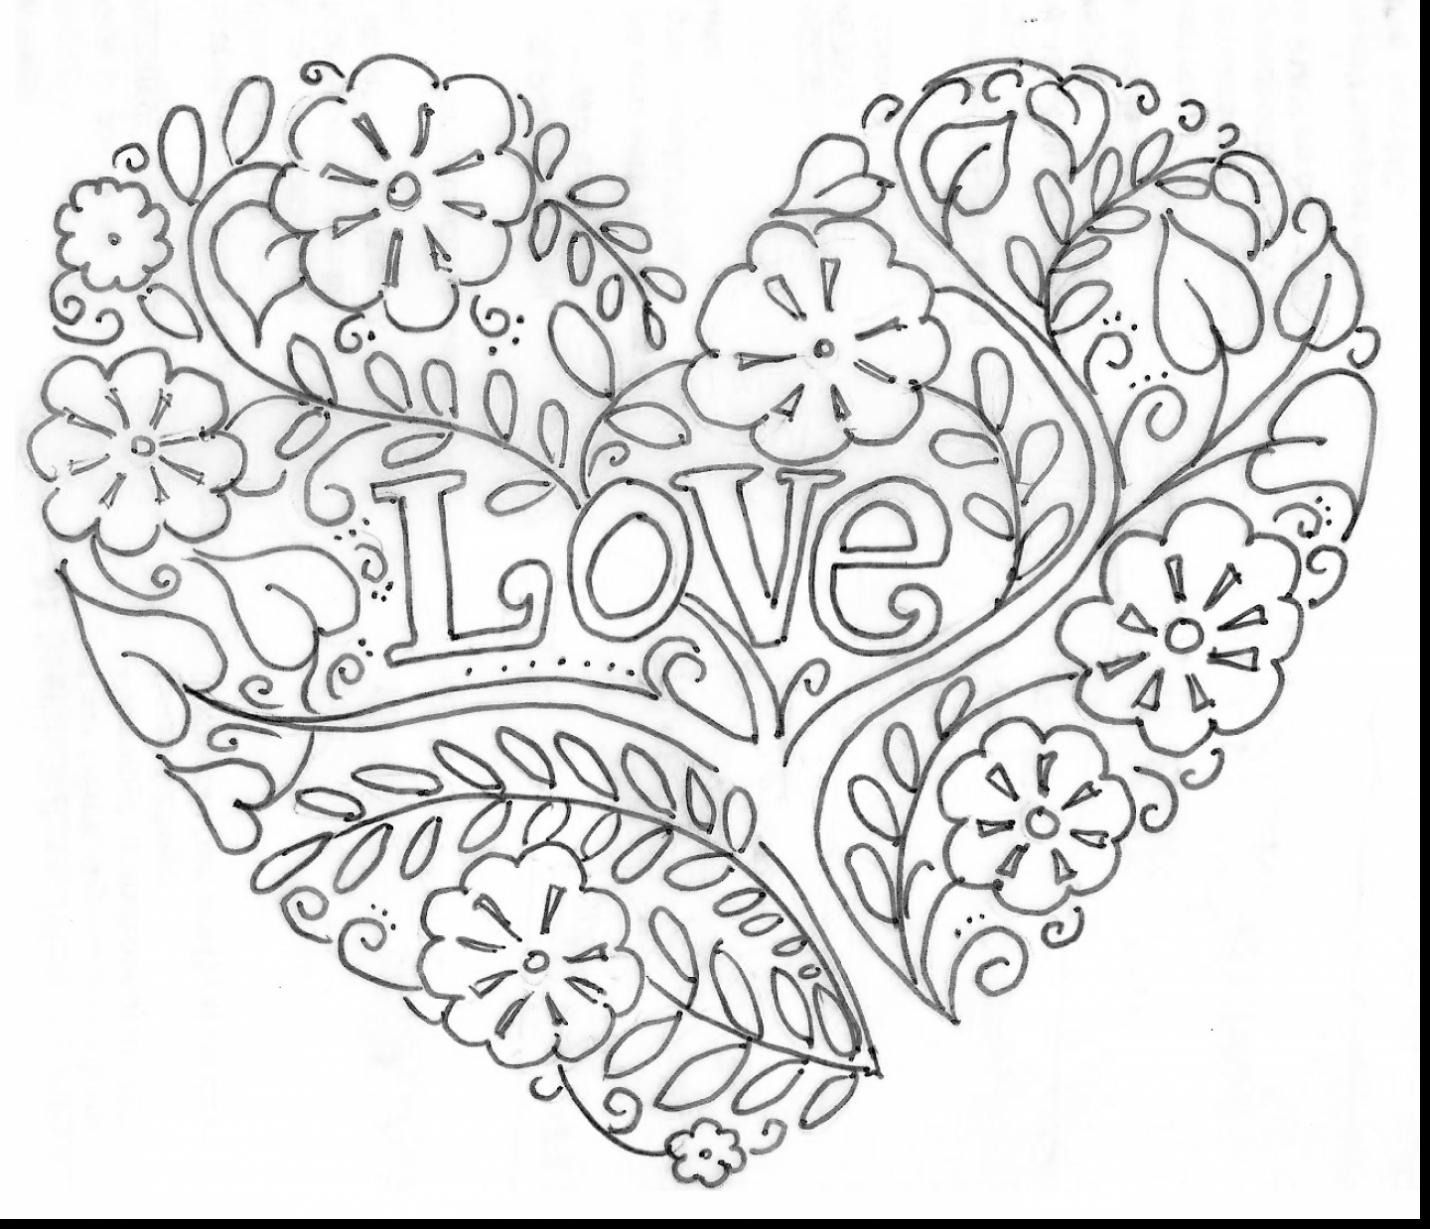 Heart Images Coloring Pages at GetDrawings.com | Free for ...